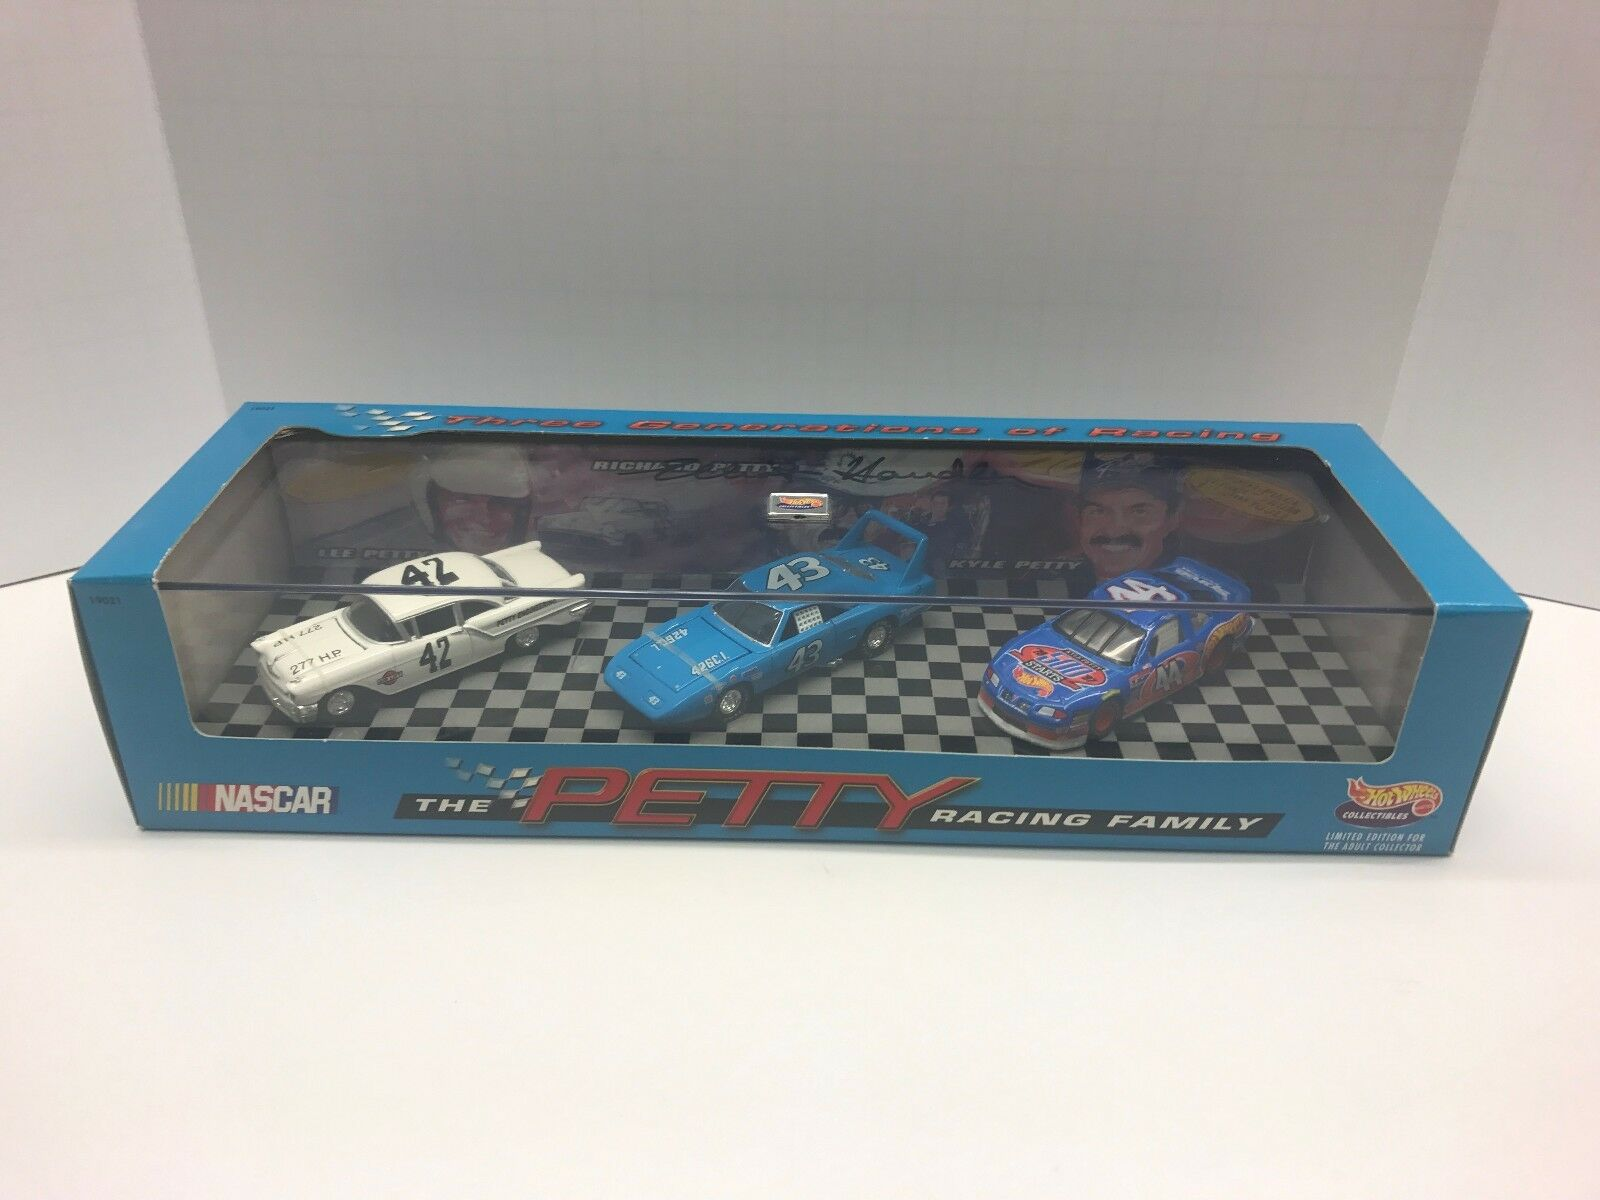 Signed By Hotwheels Inventor. The Petty Racing Family Set. (Please Read Add)